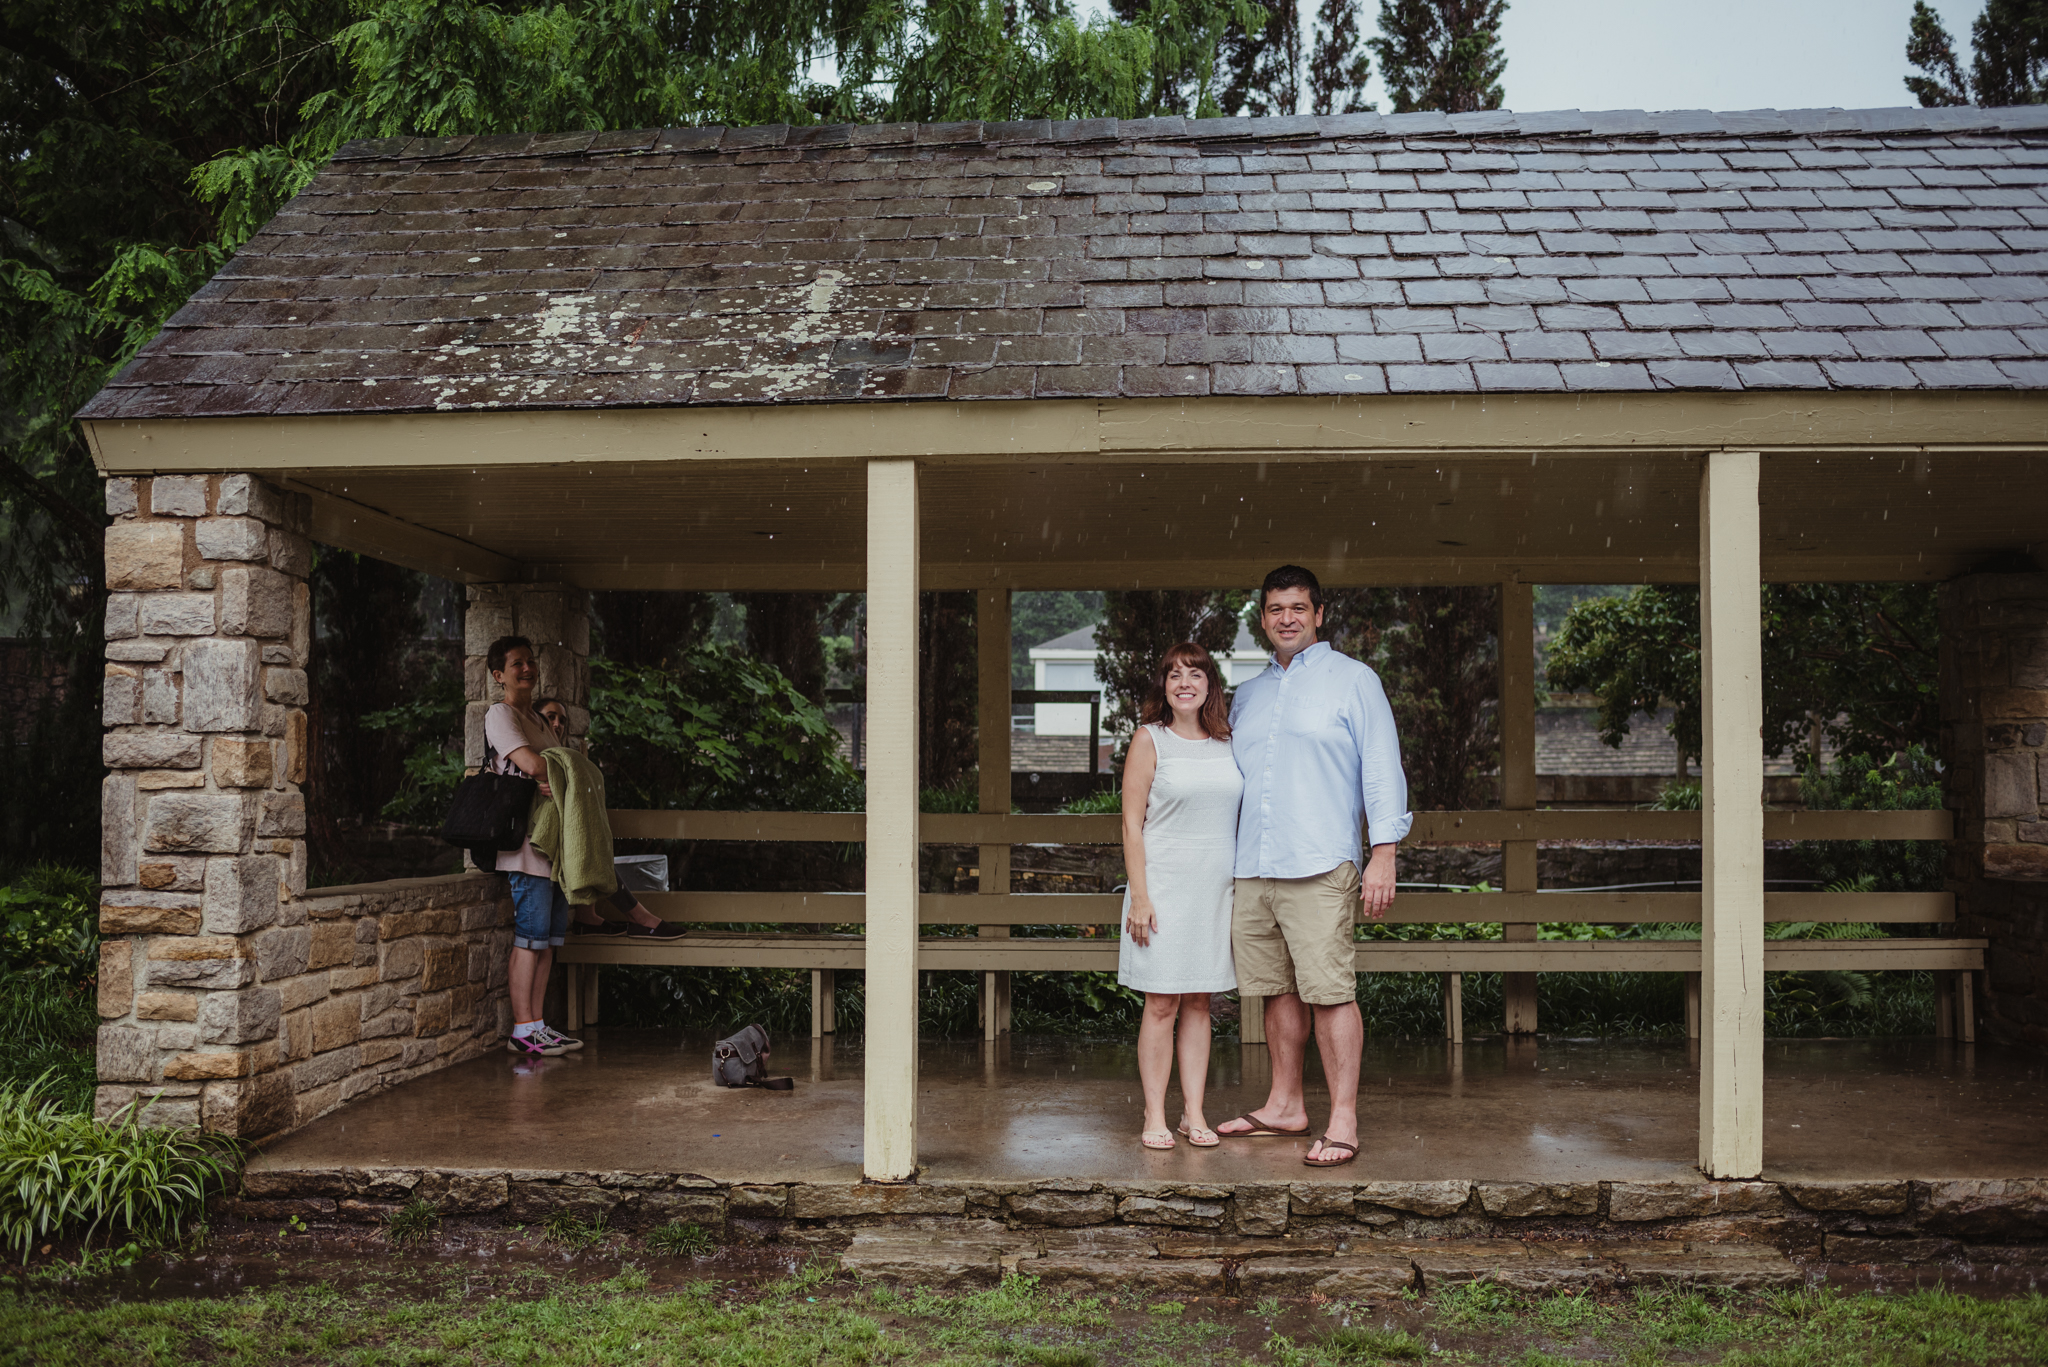 The bride and groom to be wait out the rain in the shelter during the rainstorm in Raleigh, during their engagement session with Rose Trail Images.